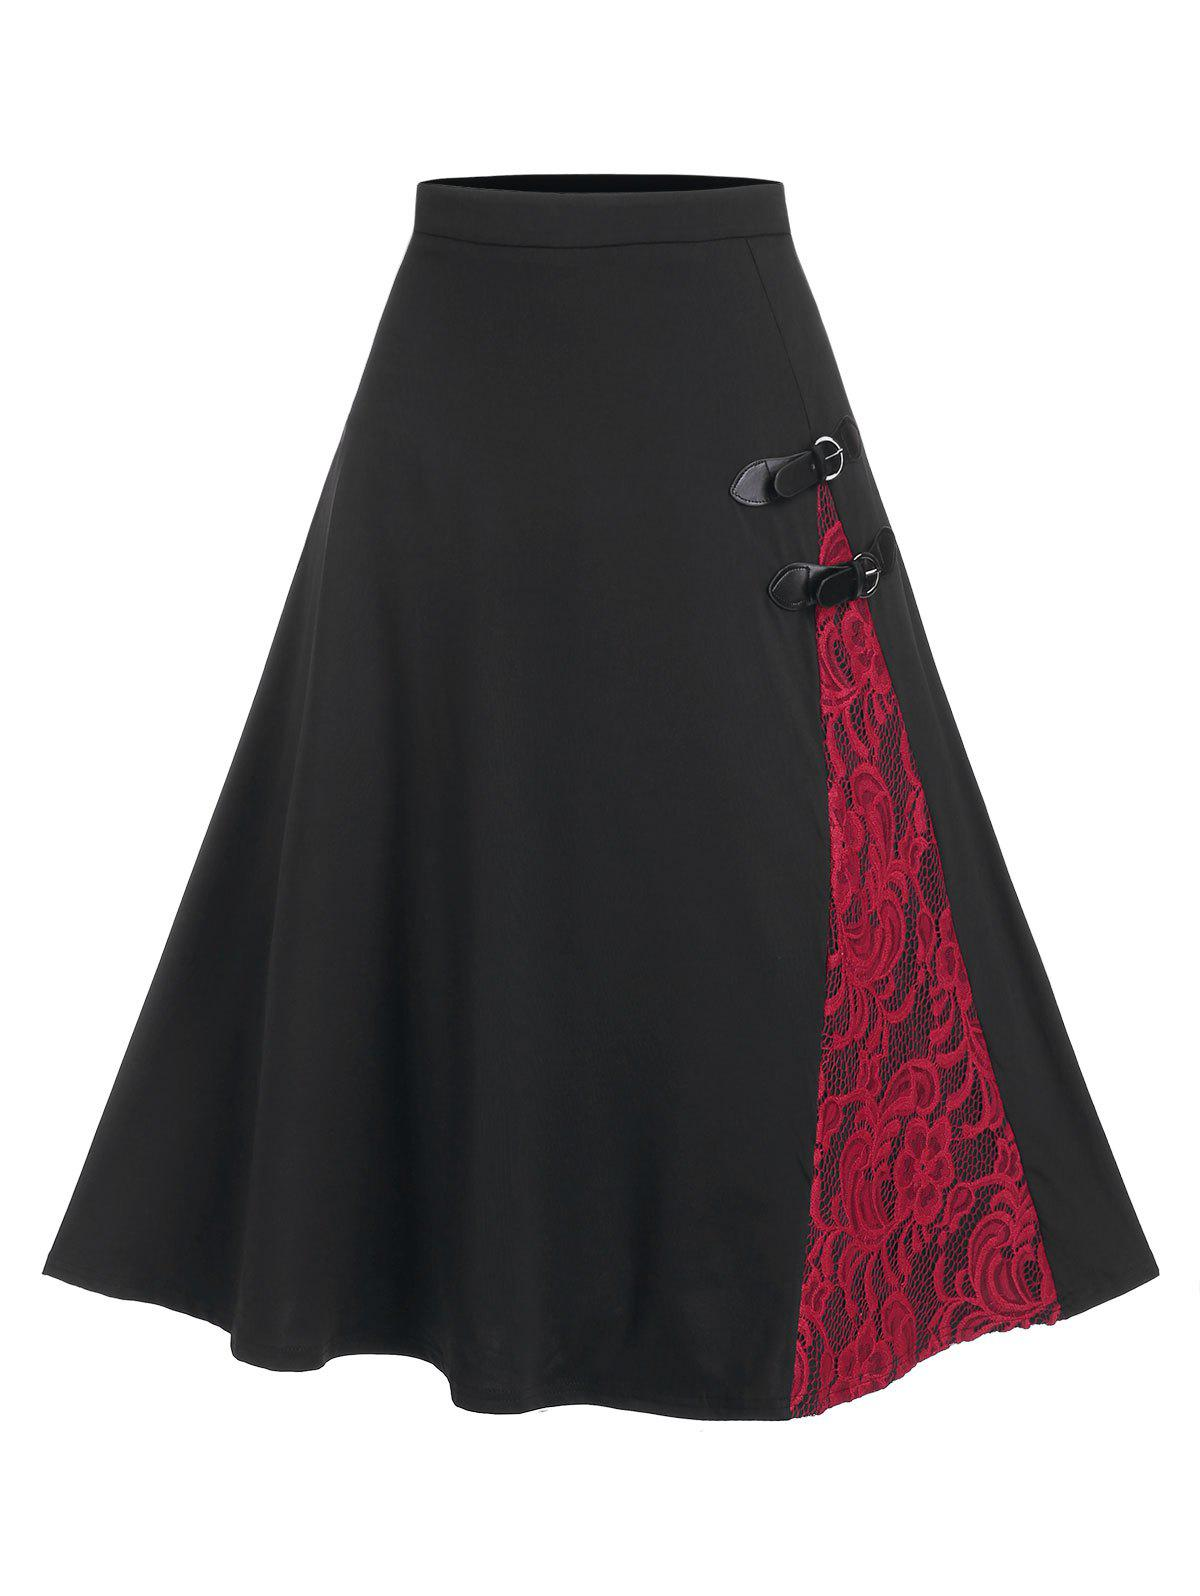 Lace Panel Buckled A Line Skirt - BLACK XL